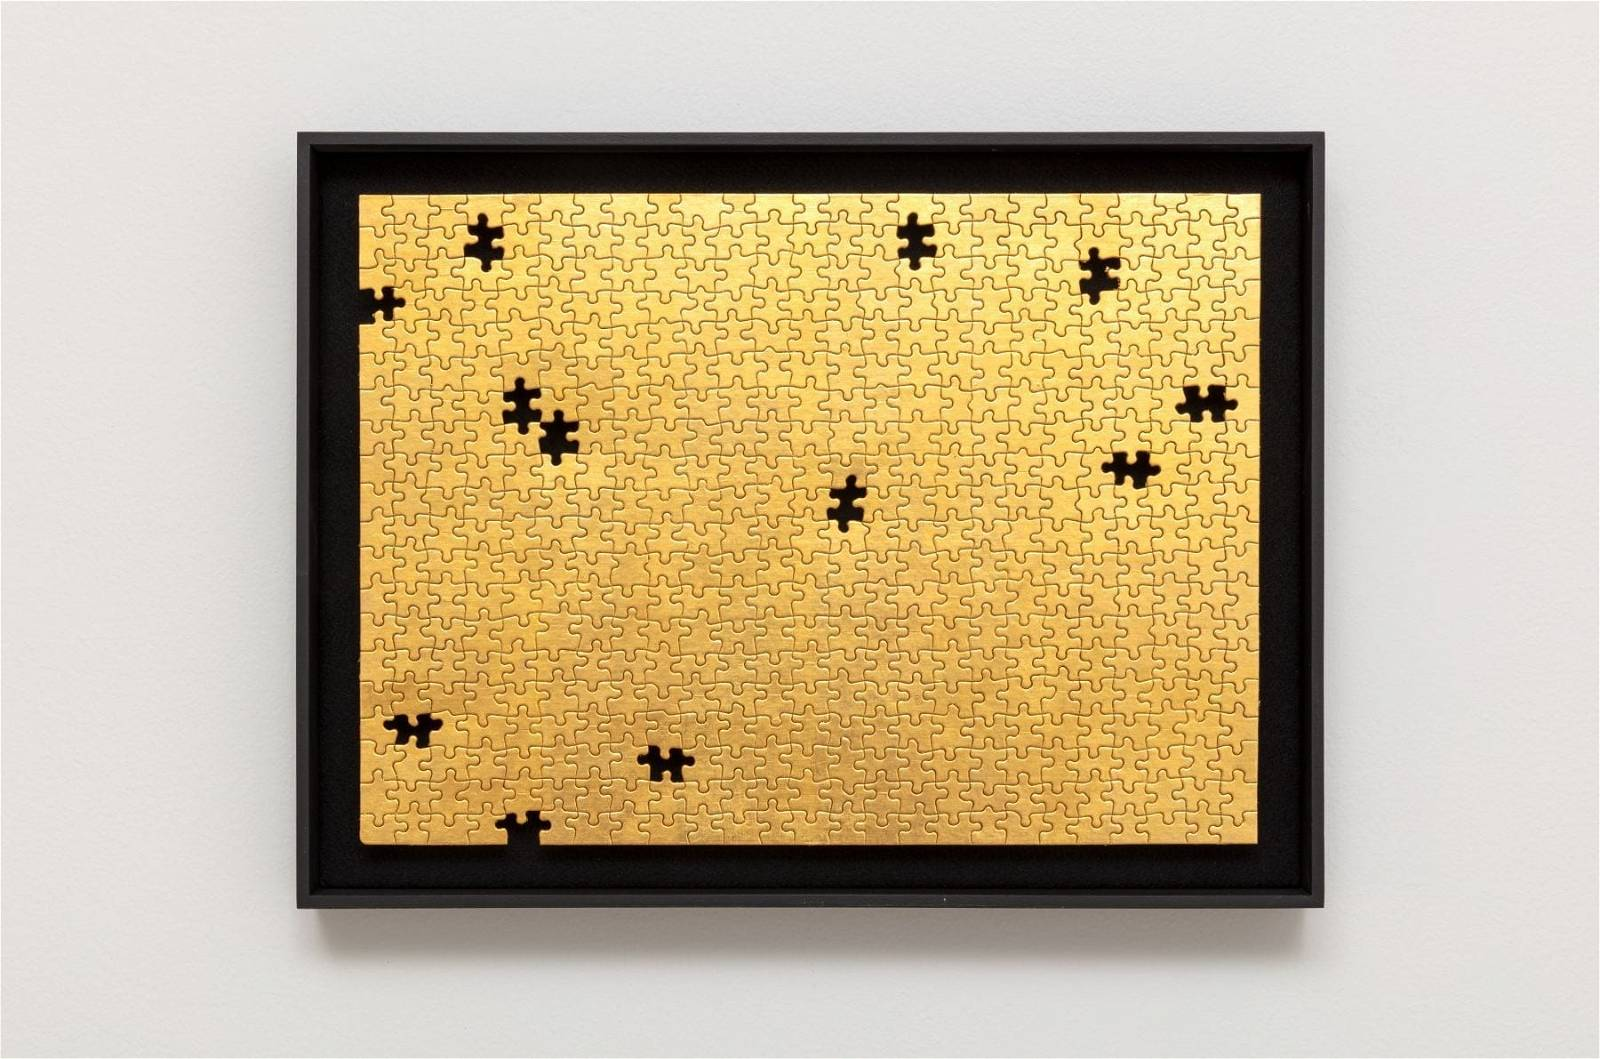 Gabriel Dawe, Missing No. 3, 2019, 24 karat gold on puzzle in artist frame, 13h x 18w in, image courtesy of the artist and Talley Dunn Gallery